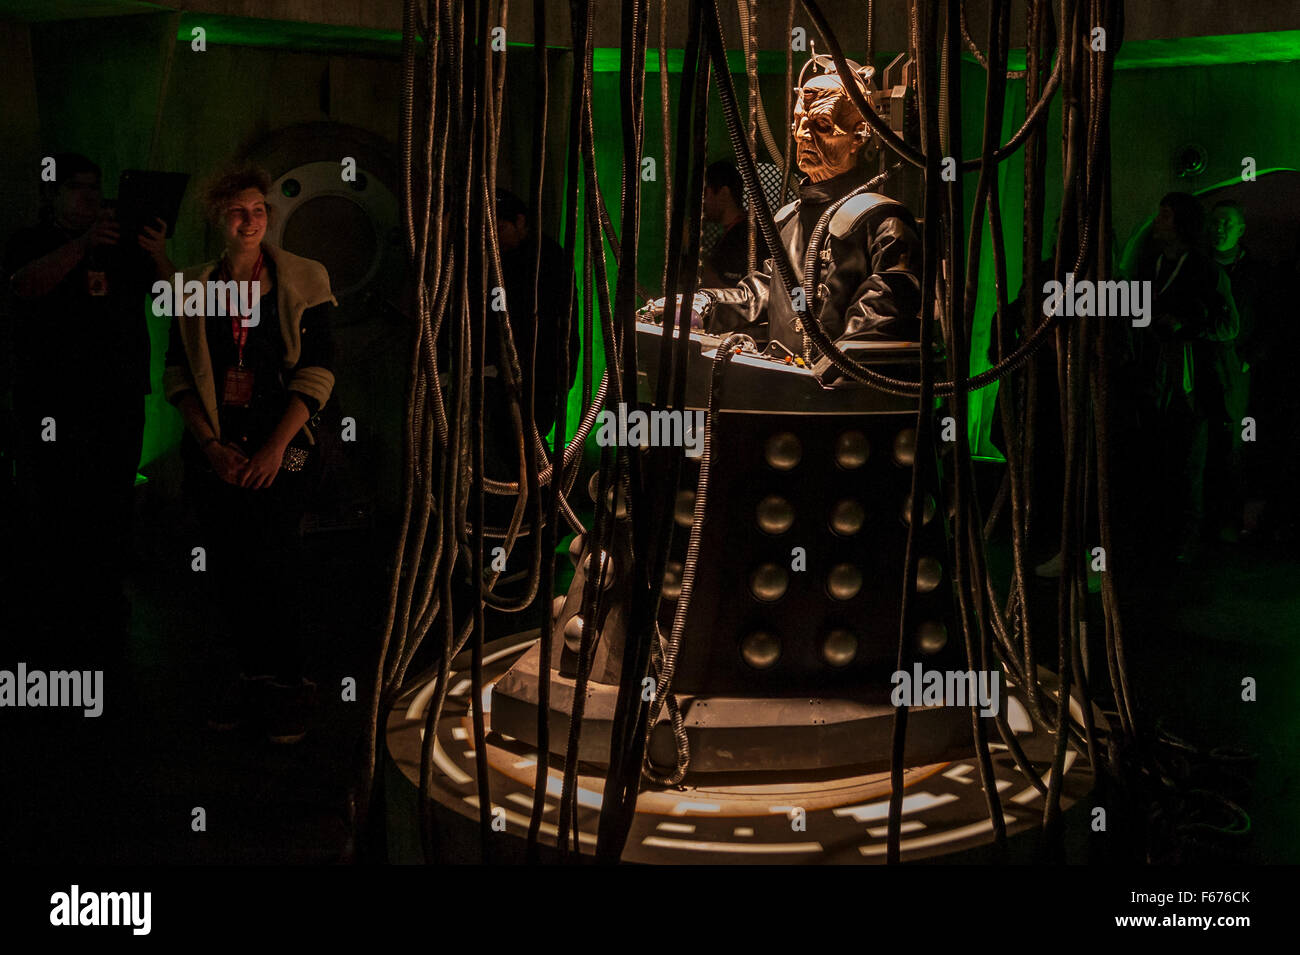 London, UK.  13 November 2015.  Fans gather to meet Doctor Who's enemy, Davros, at the Excel Centre for the - Stock Image